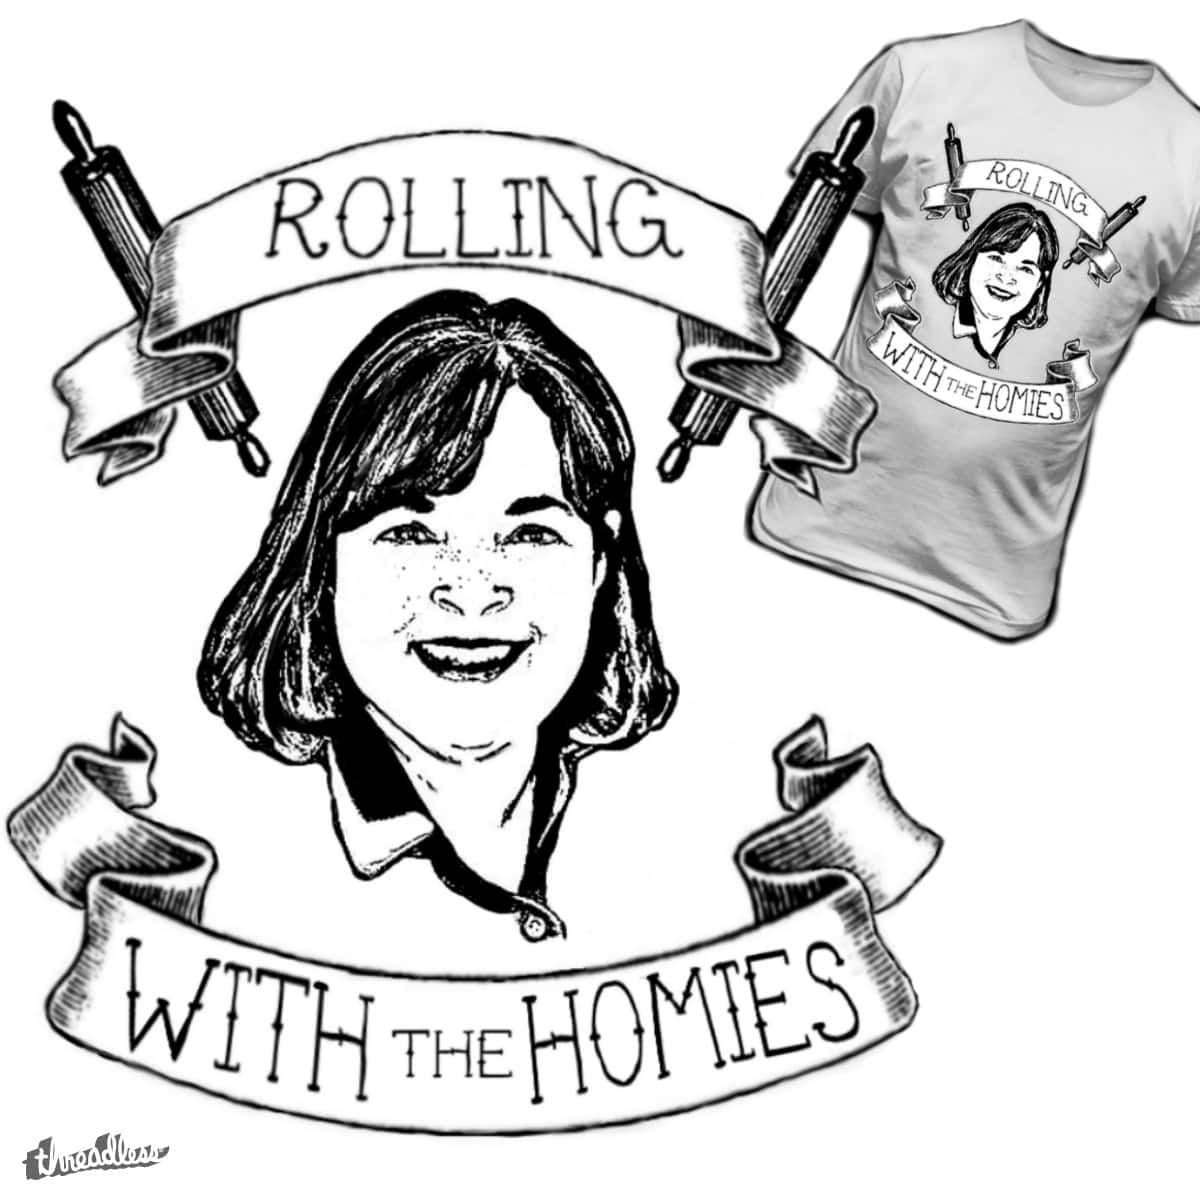 rolling with the homies by tabey on Threadless